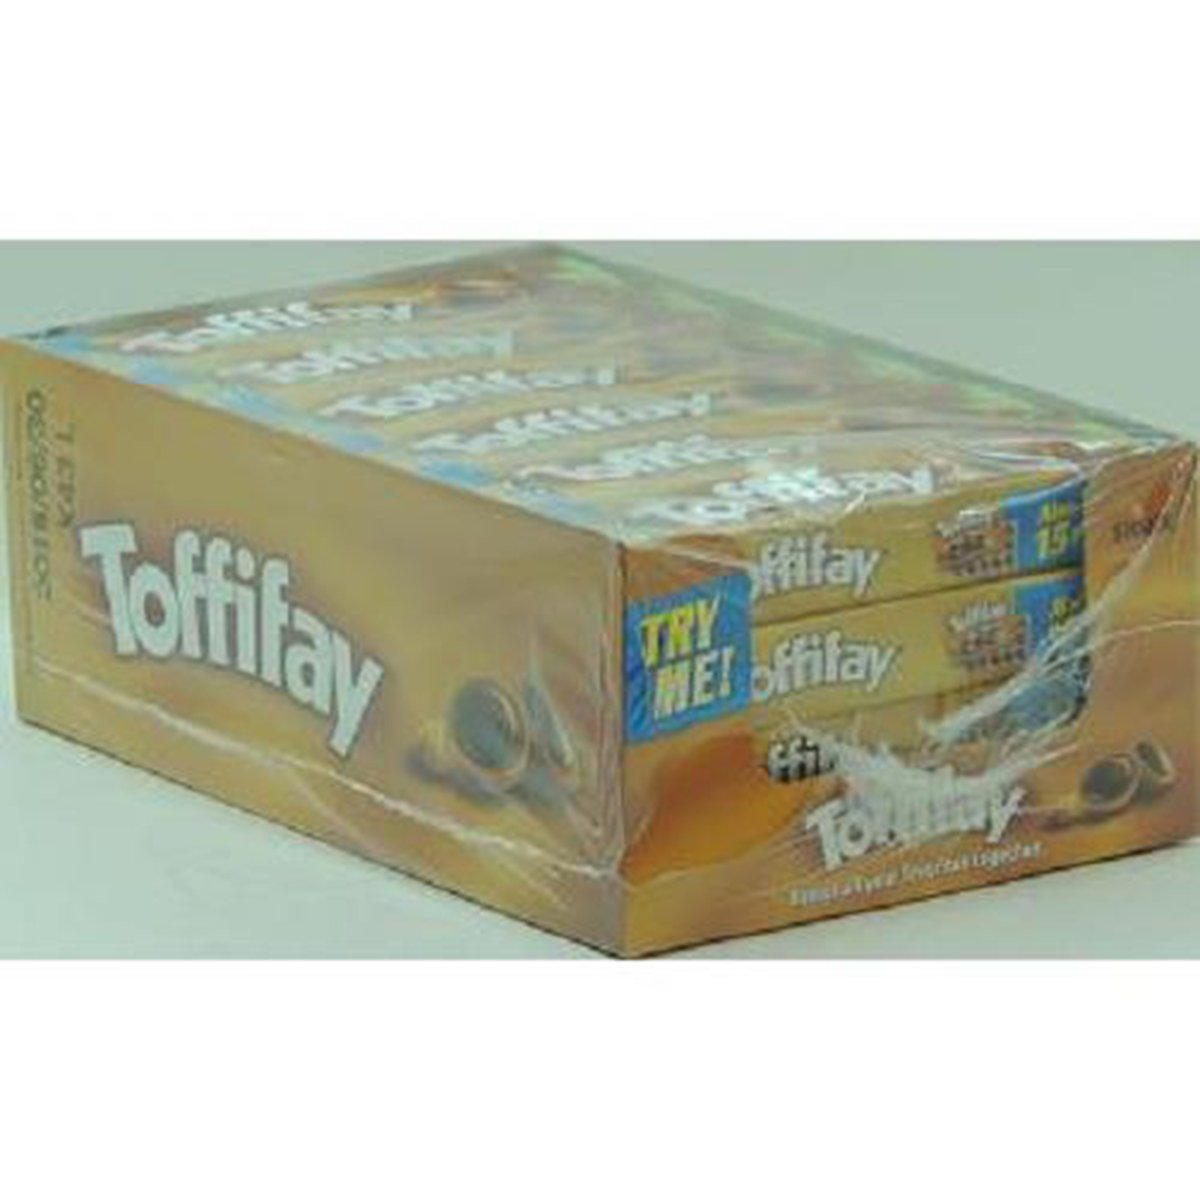 Product Of Toffifay, Hazelnut Chewy Caramel , Count 21 (1.16 oz ) - Chocolate Candy / Grab Varieties & Flavors